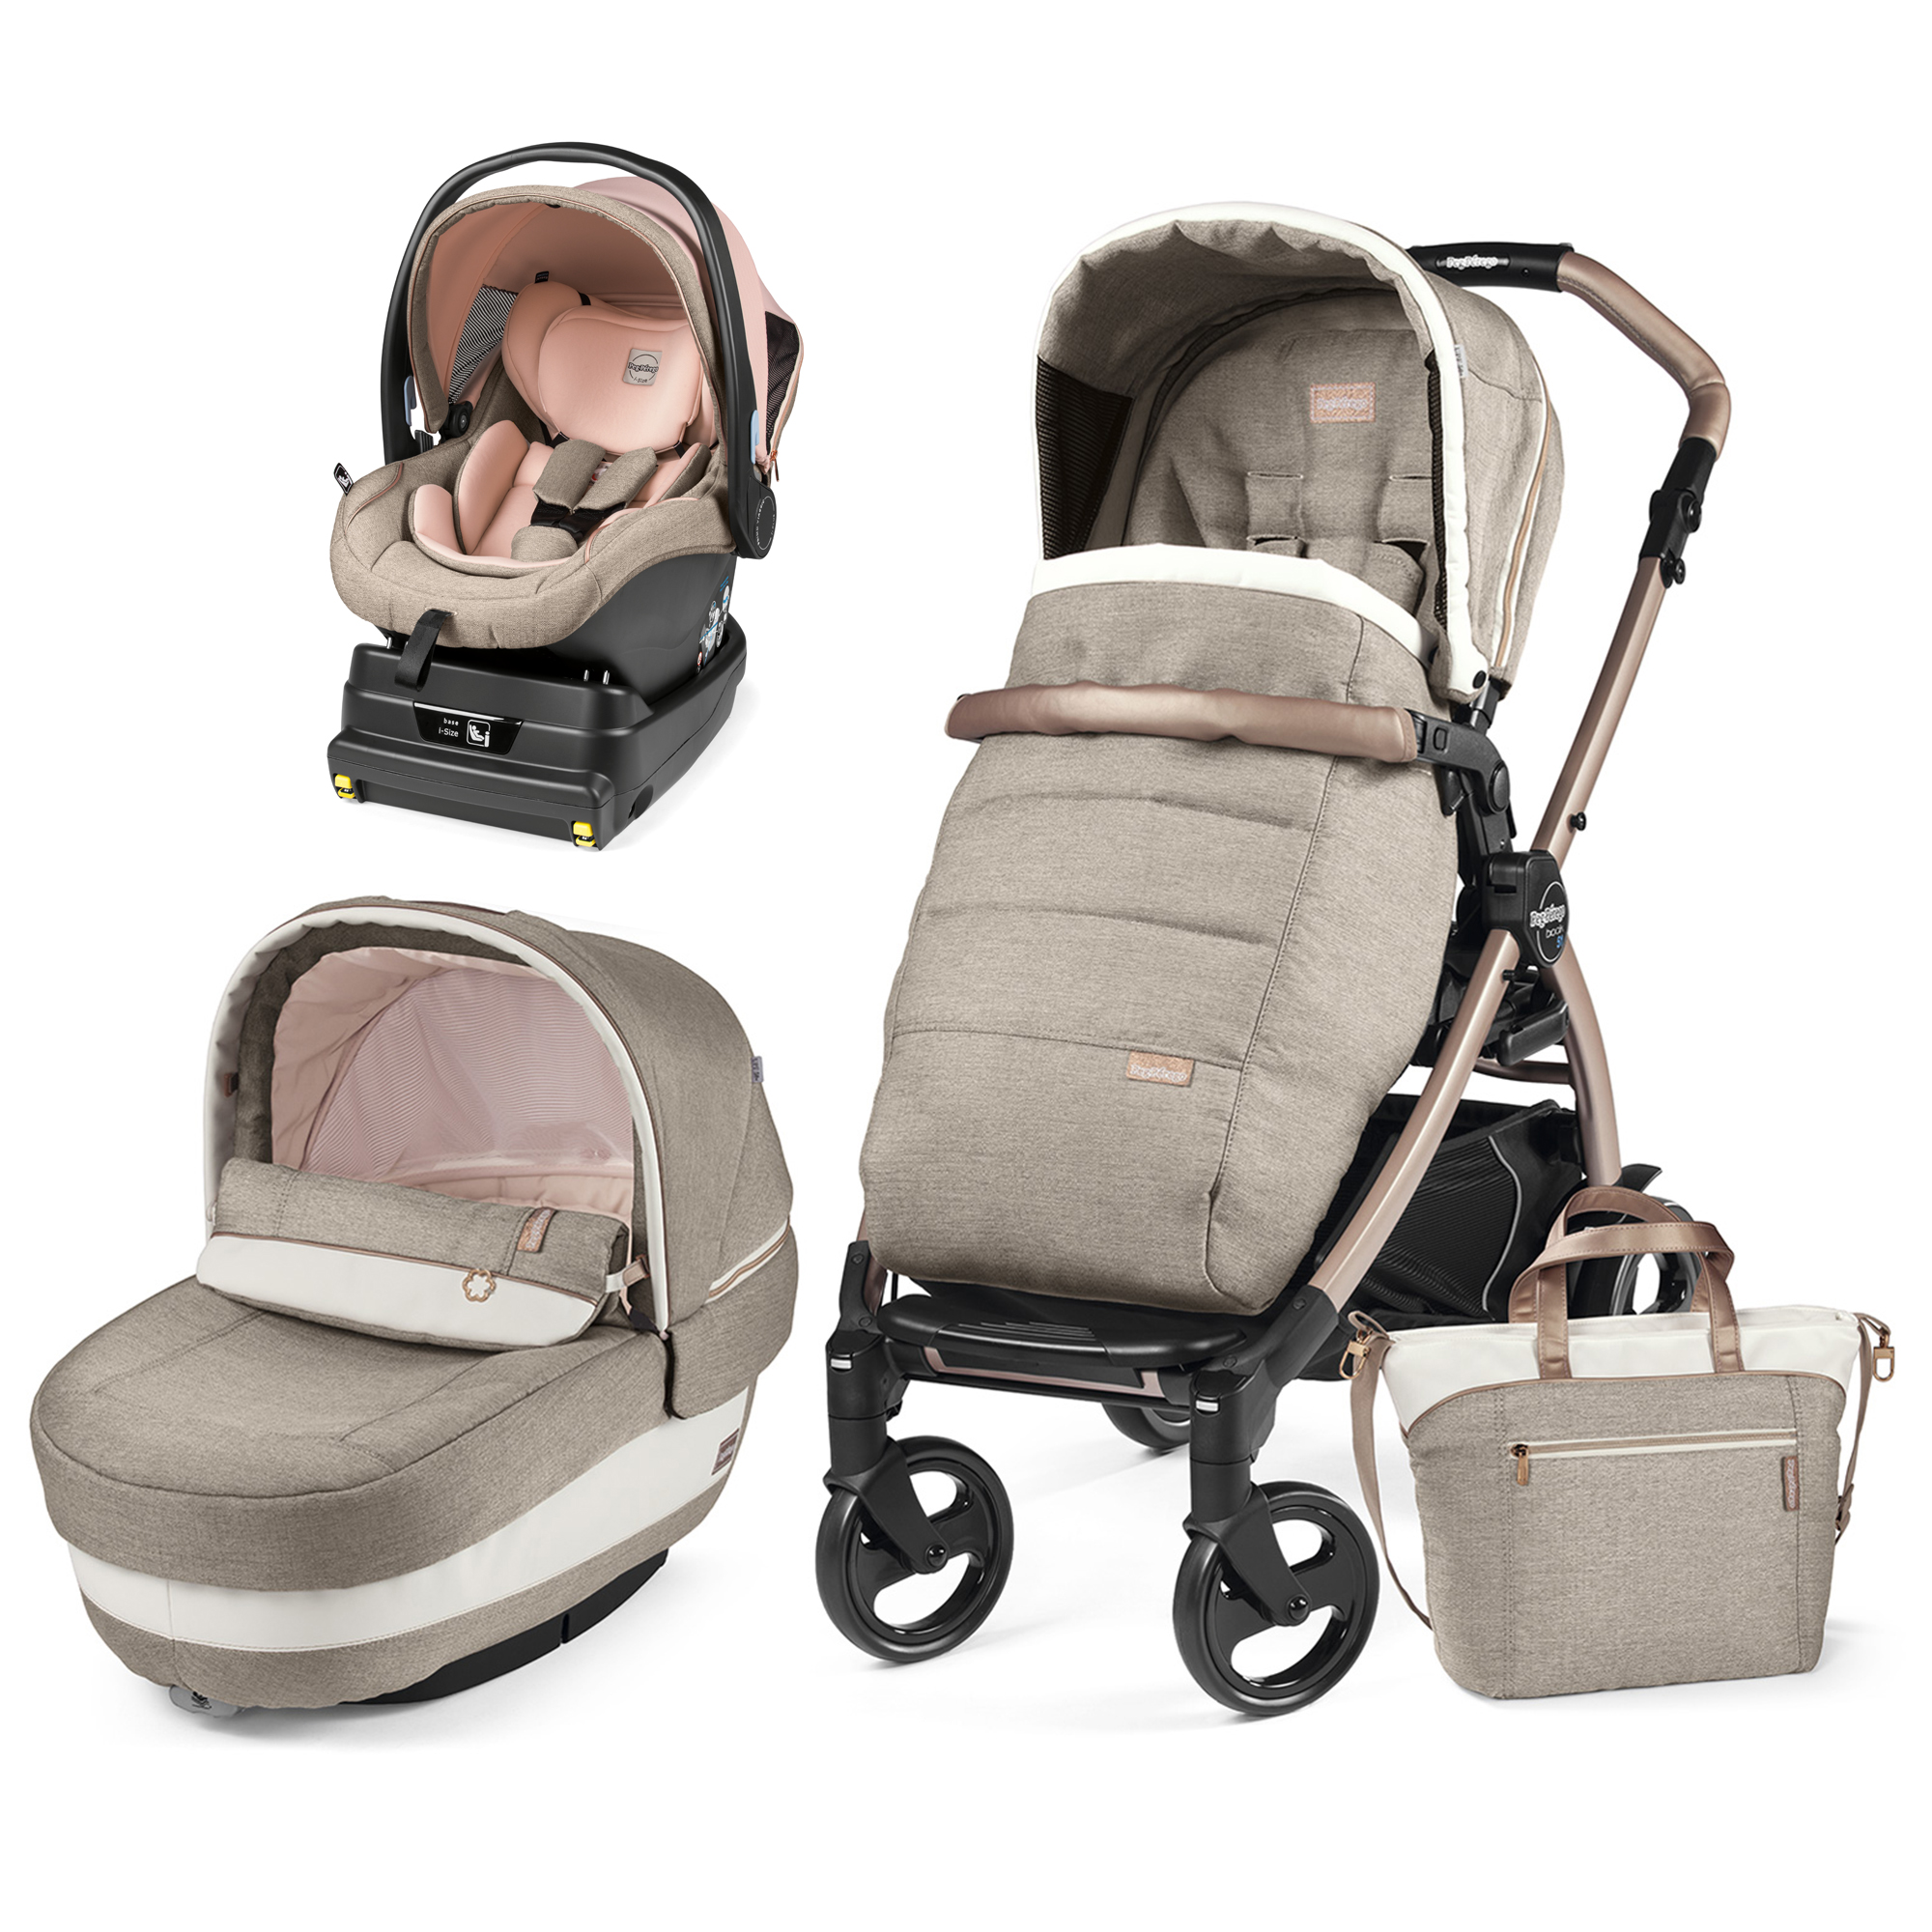 Carucior 3 in 1 Book 51 Mon Amour Elite i-Size, Peg Perego